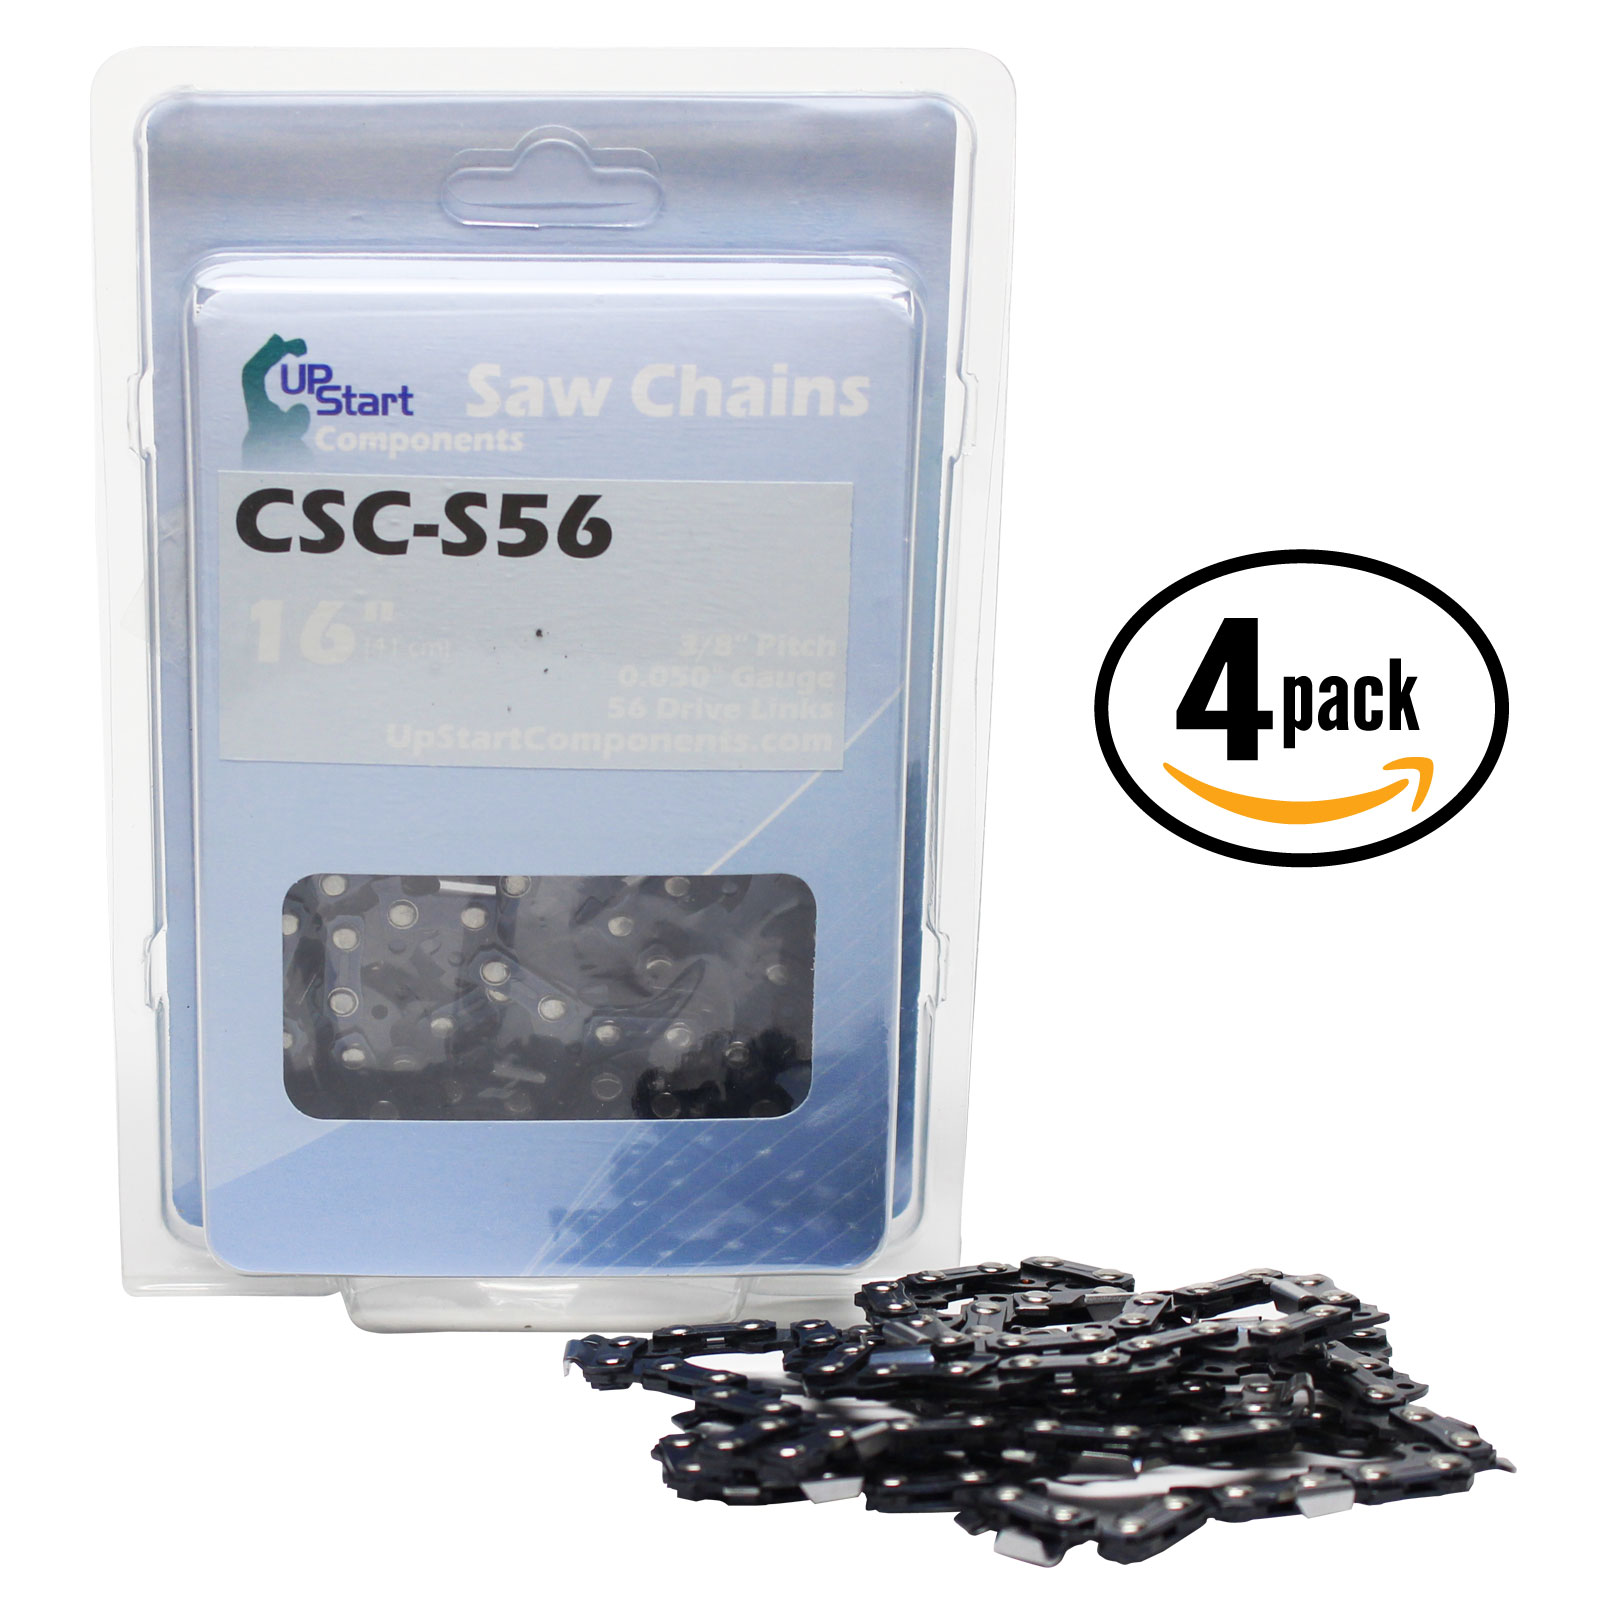 "4-Pack 16"" Semi Chisel Saw Chain for Craftsman 35586 Chainsaws - (16 inch, 3/8"" Low Profile Pitch, 0.050"" Gauge, 56 Drive Links, CSC-S56) - UpStart Components"